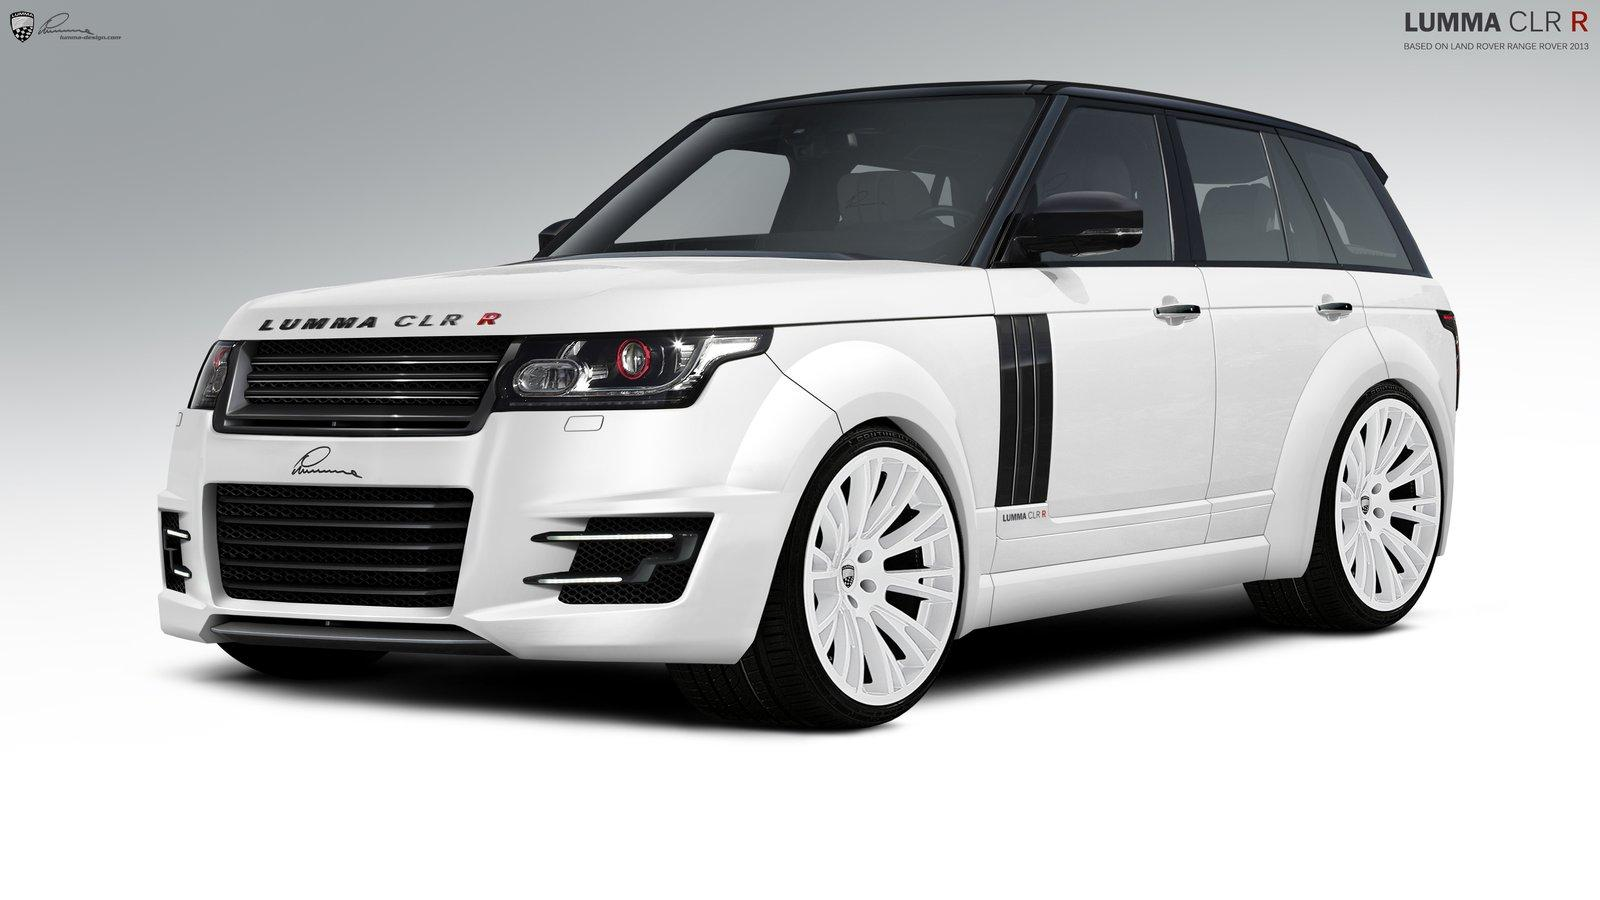 Lumma Design Previews Tuning Program For The 2013 Range